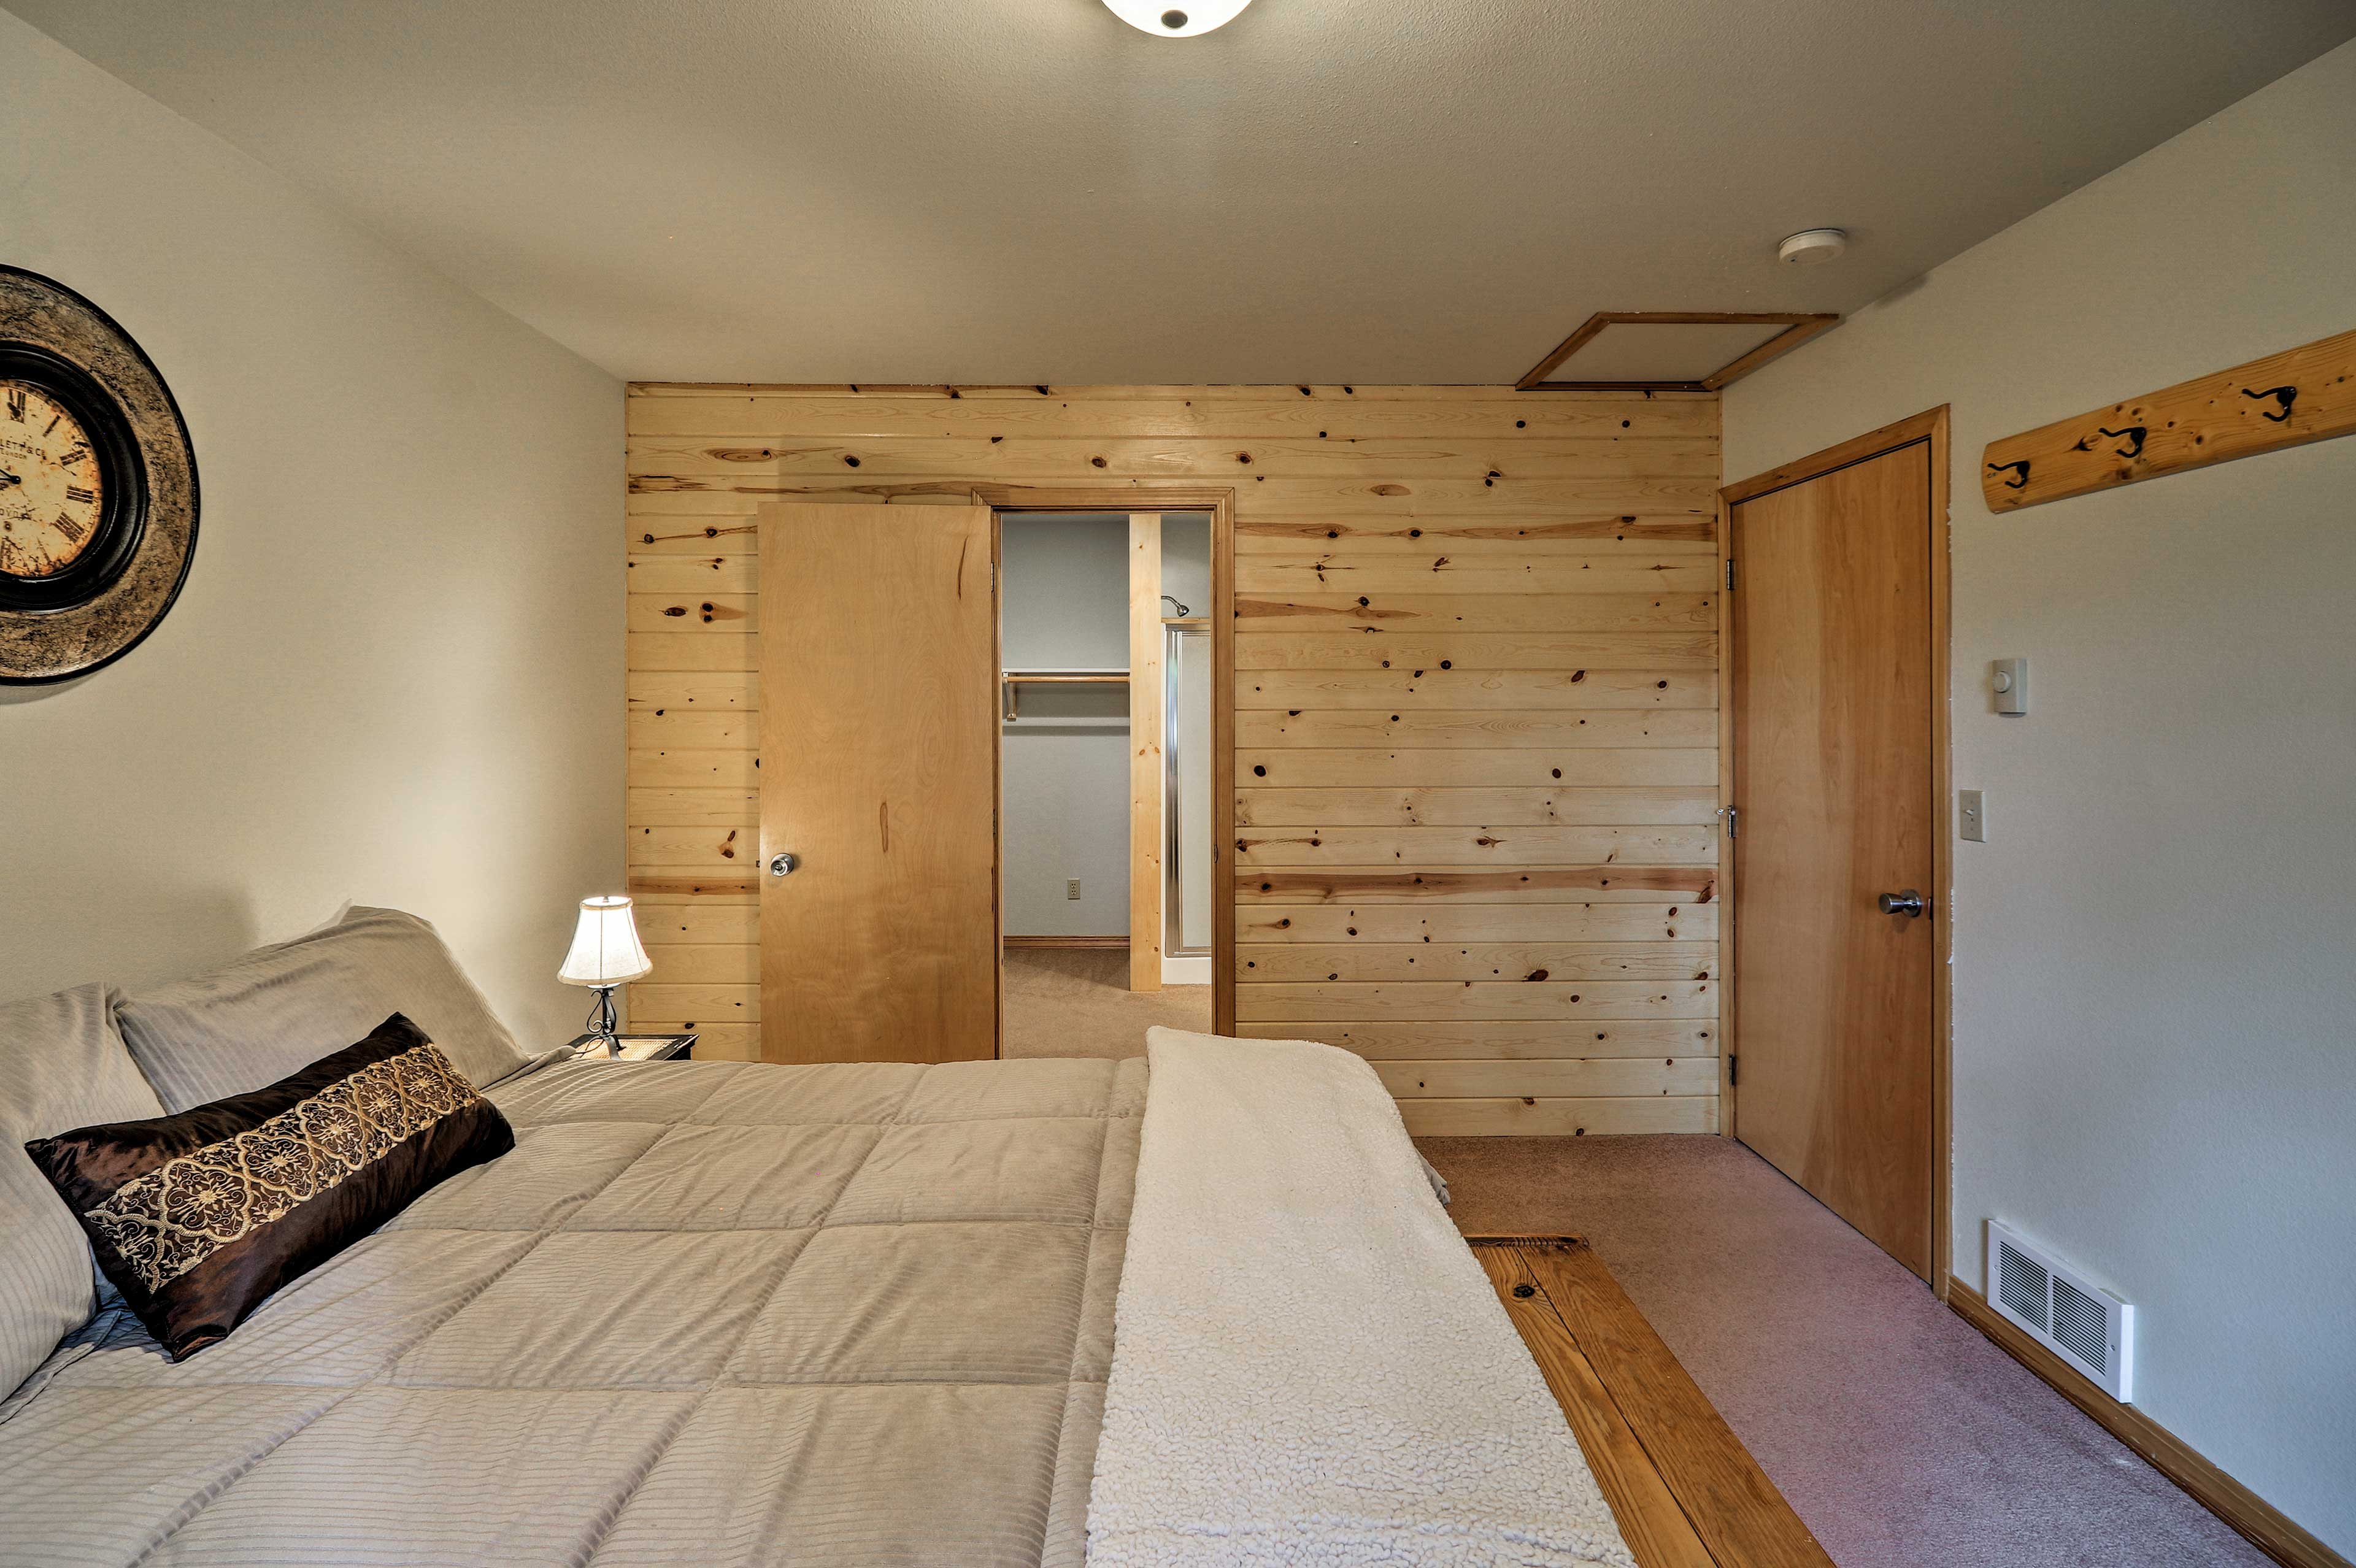 The room features a large closet.